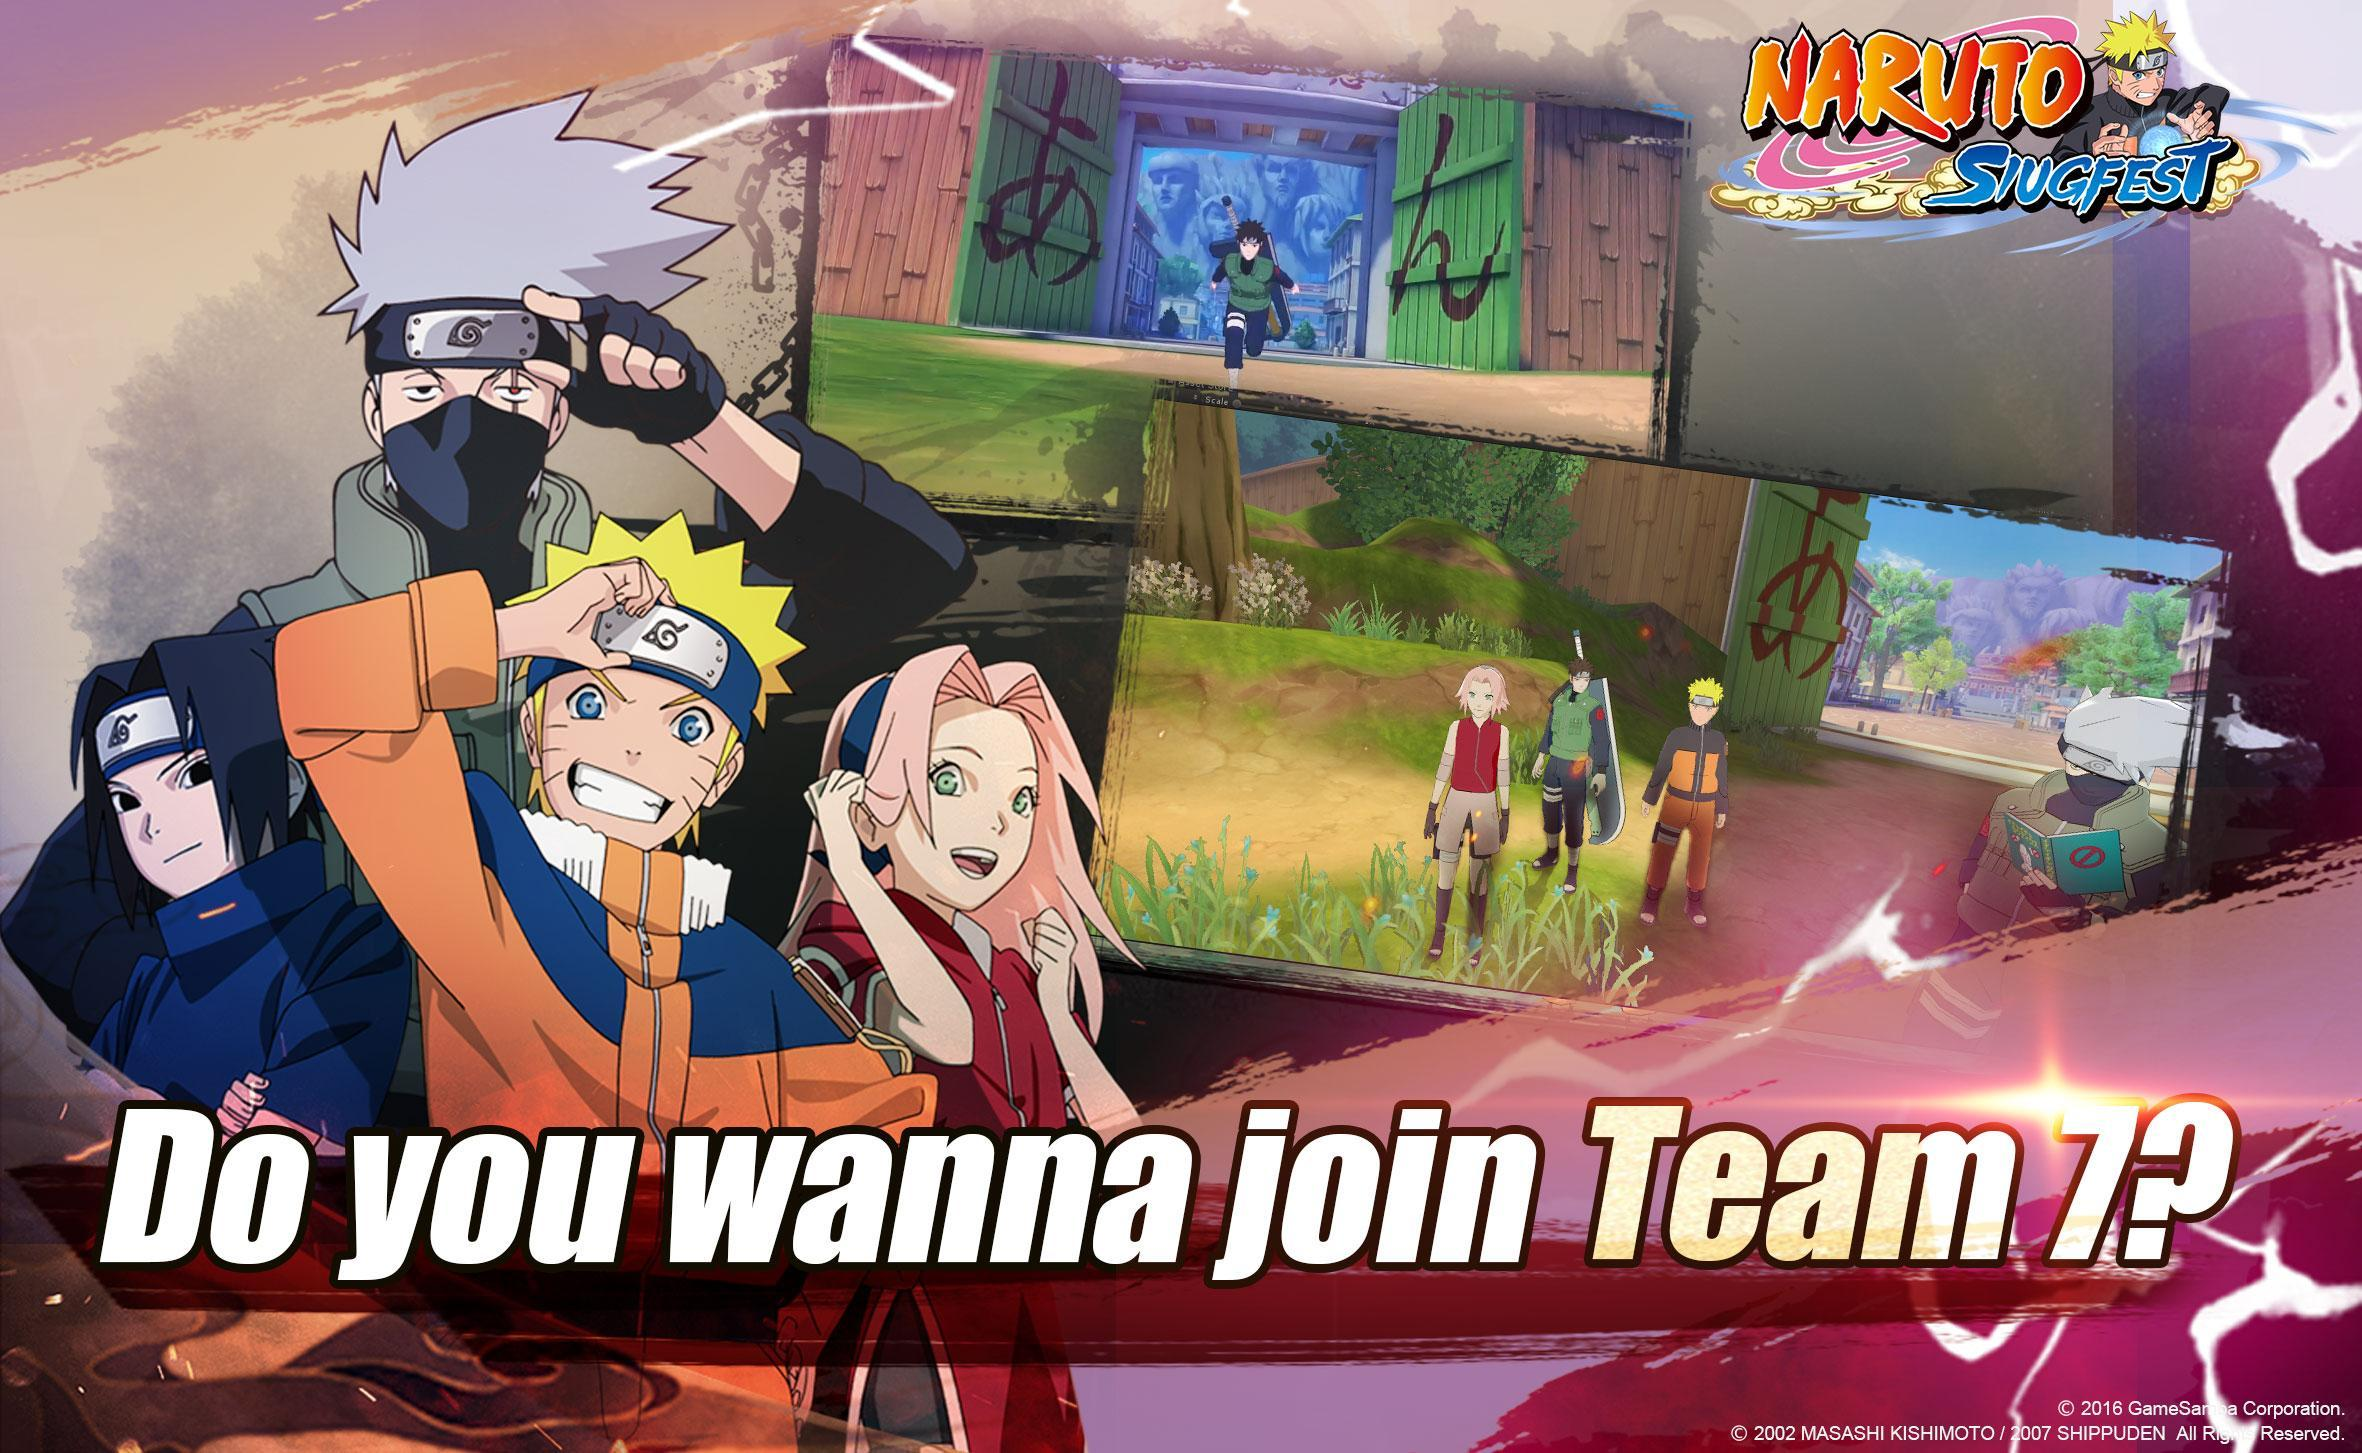 Website download game gratis Naruto: Slugfest